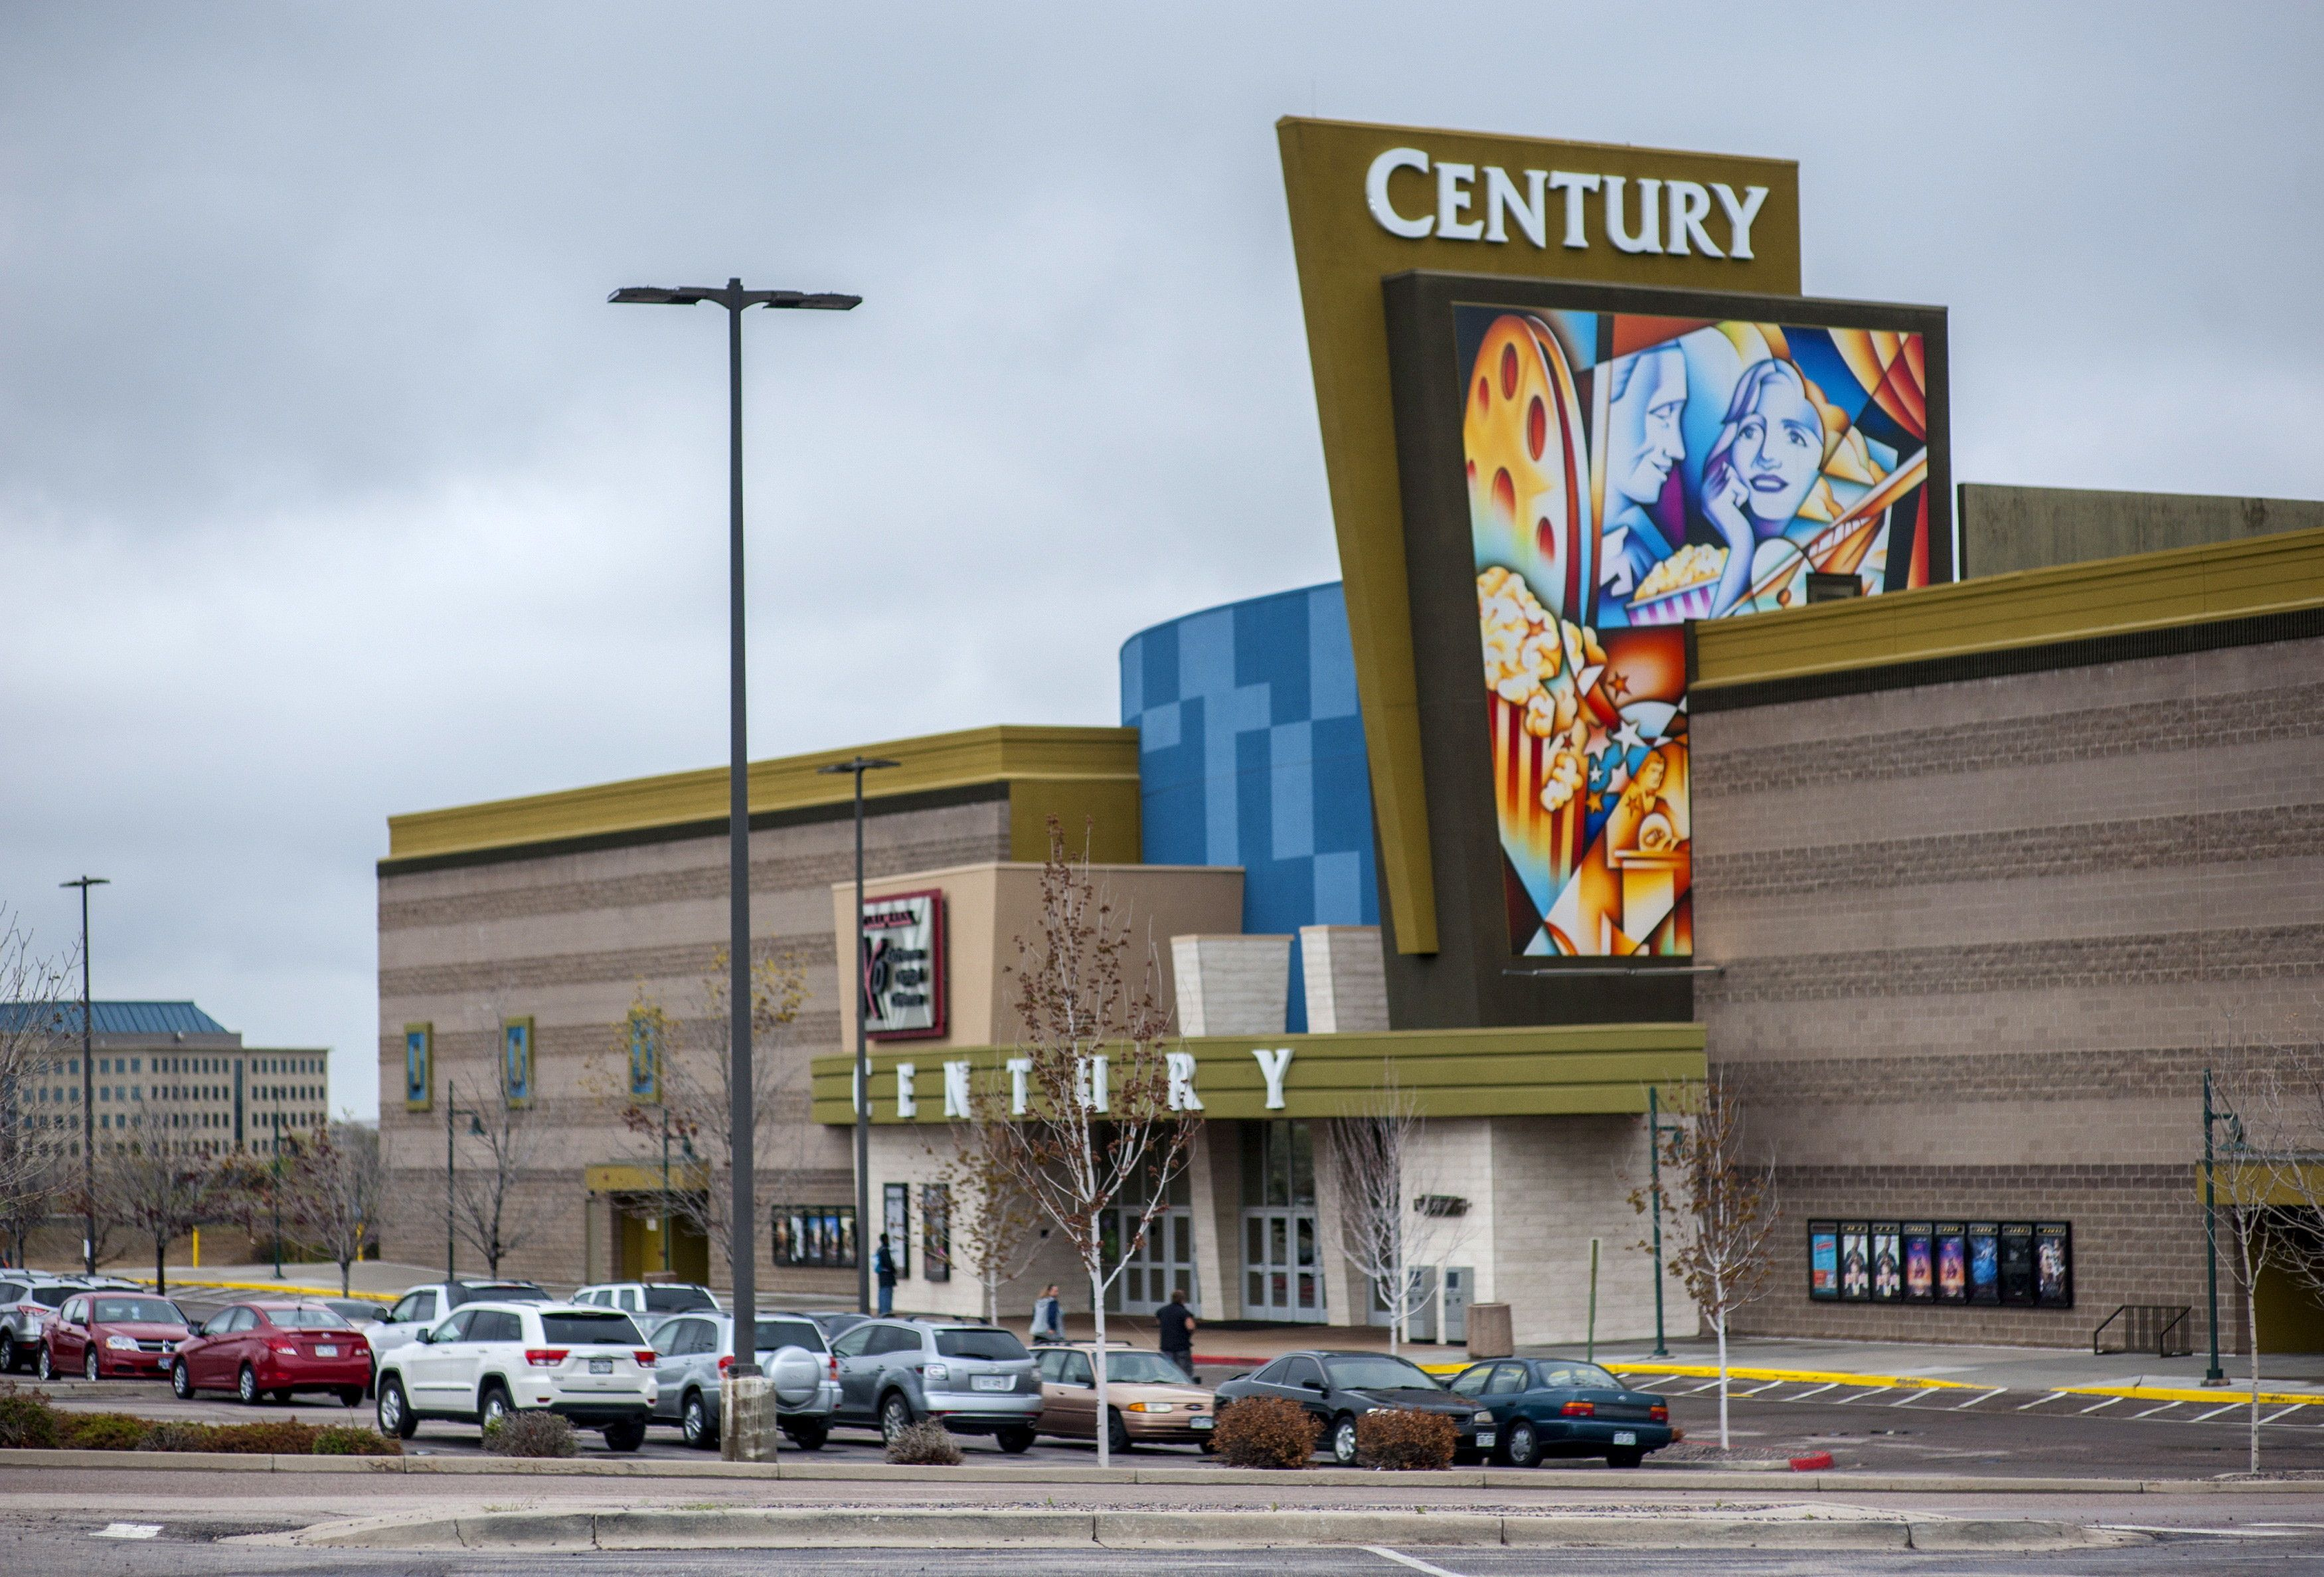 Century Aurora 16 movie theater is pictured in Colorado April 27, 2015. A group of more than two dozen plaintiffs, including surviving victims and relatives of the dead, have sued the movie theater chain Cinemark USA and the cinema's property owners in state court, with jury selection to begin May 9, 2016.  REUTERS/Evan Semon/File Photo